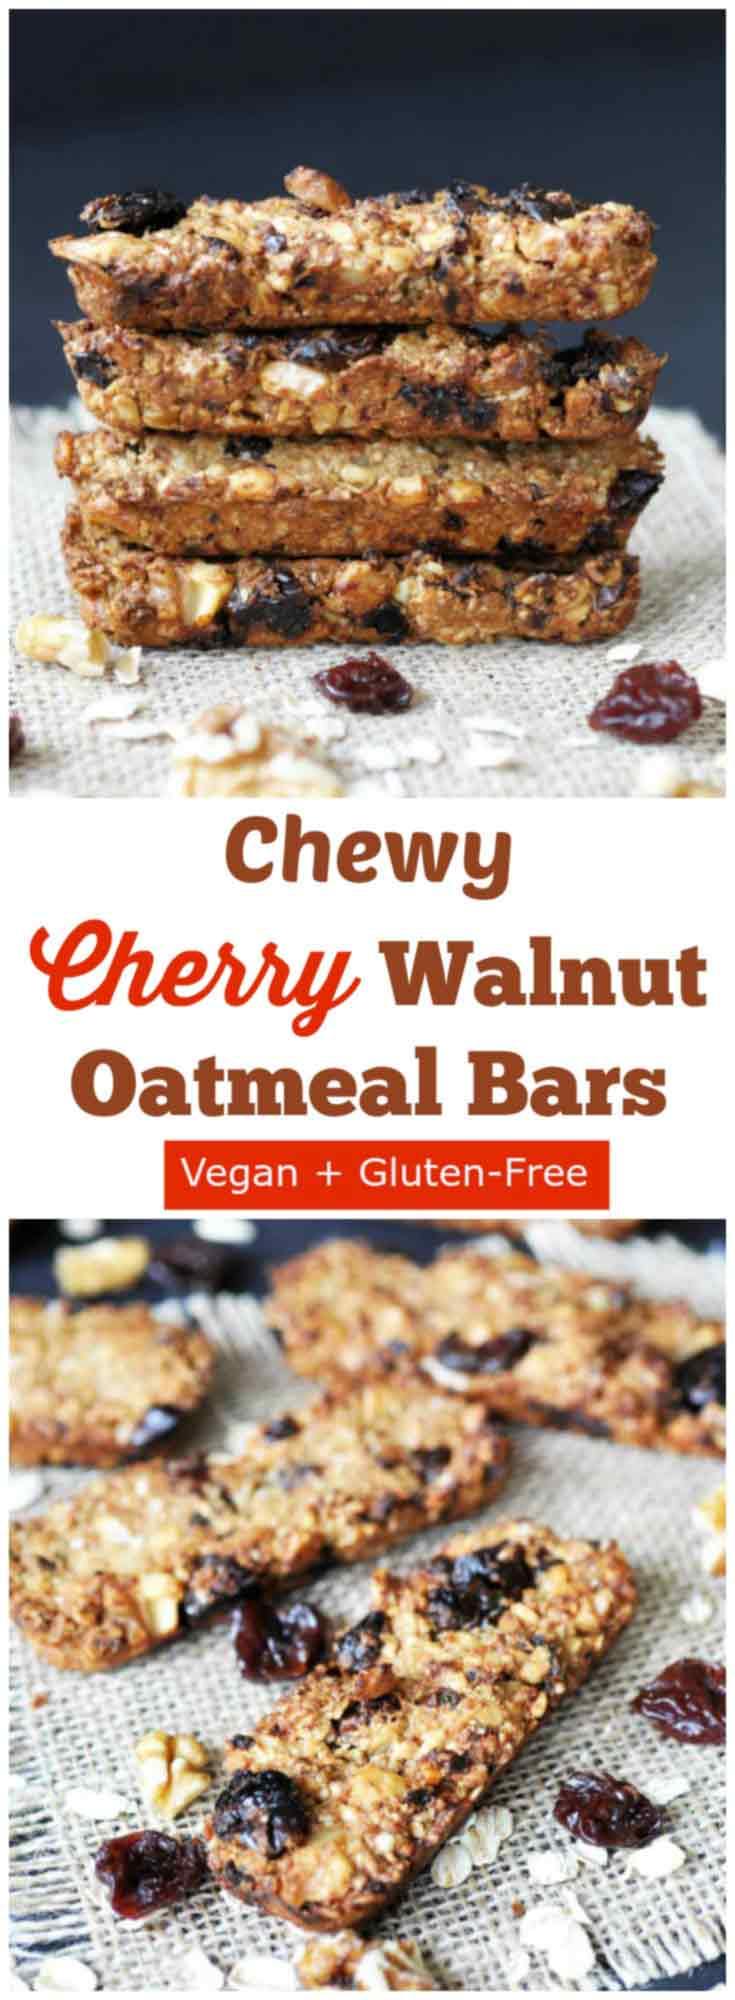 Chewy Cherry-Walnut Oatmeal Energy Bars! This granola bar recipe is ...